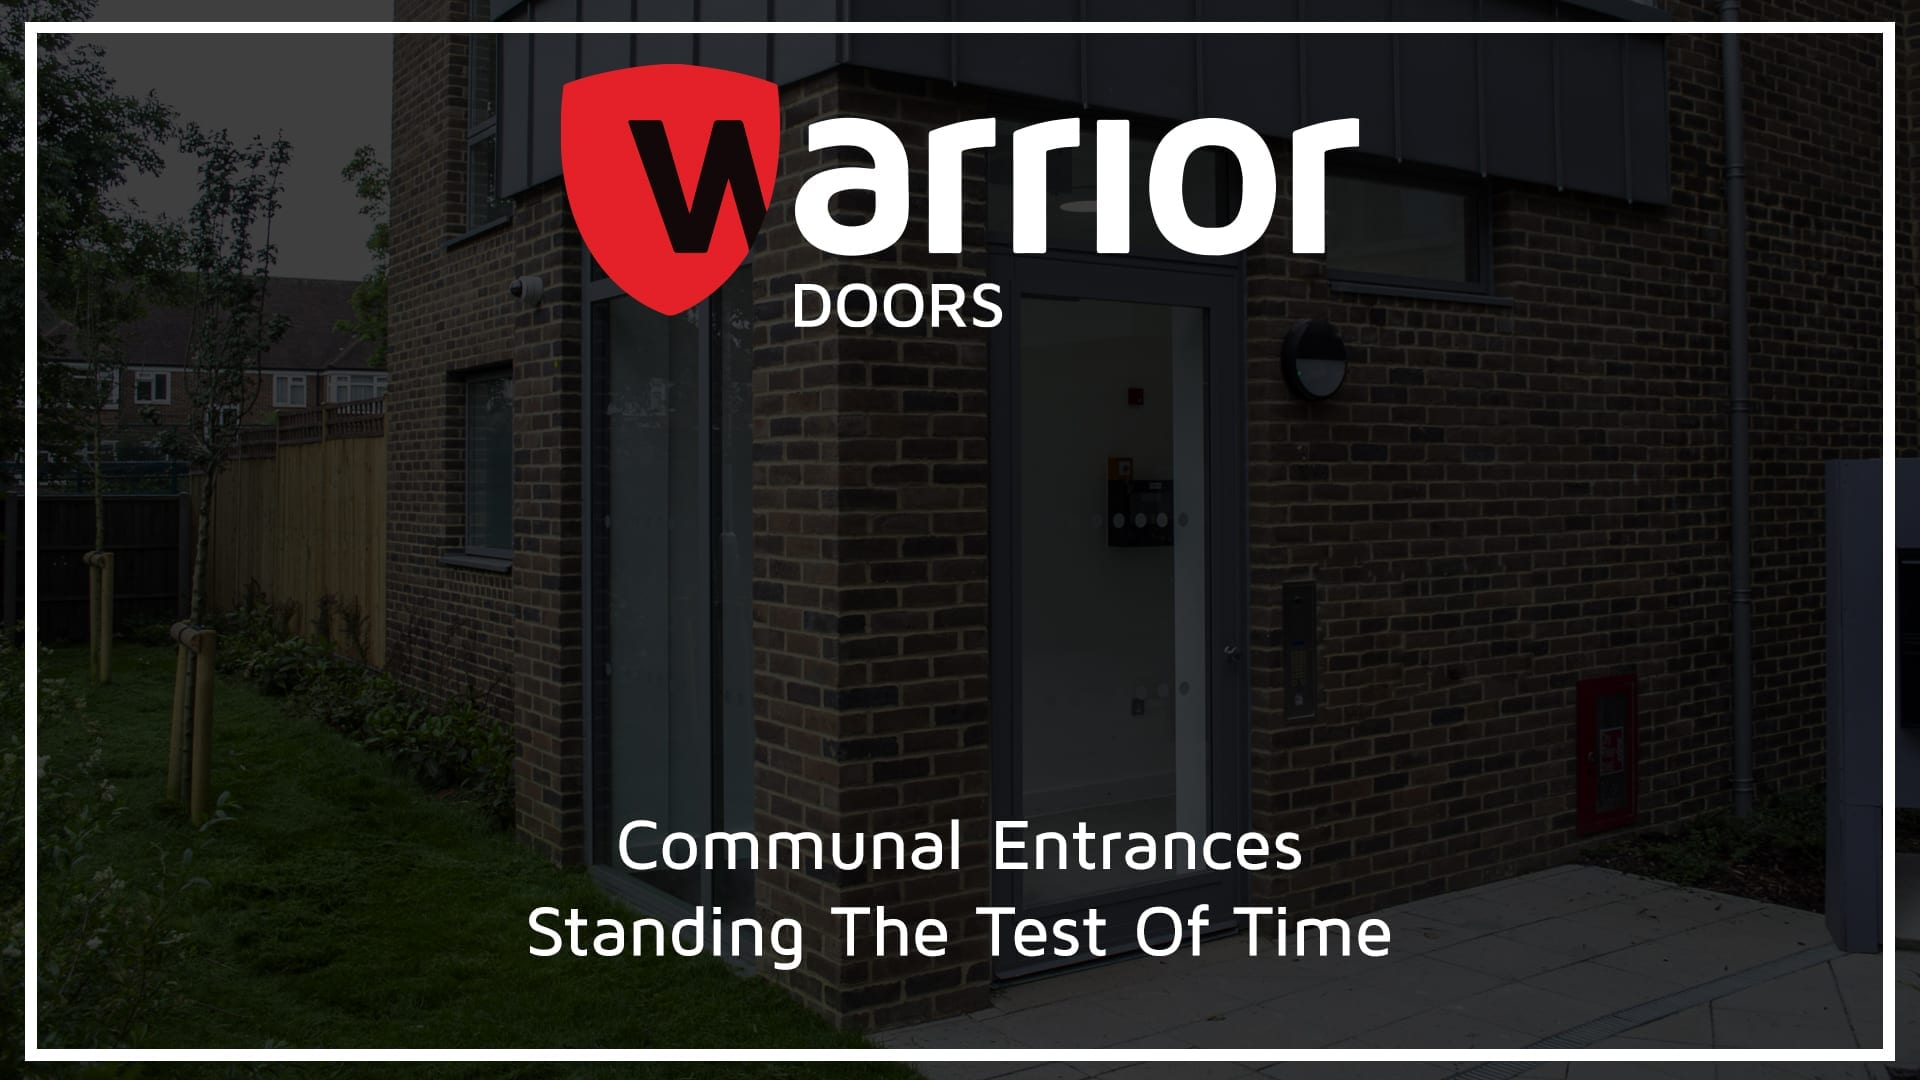 """Warrior Fully Glazed Communal Entrance Door & Screen on a Communal Residential Building with Warrior Doors Logo and tect reading """"CommunalEntrances Standing The Test Of TIme"""""""